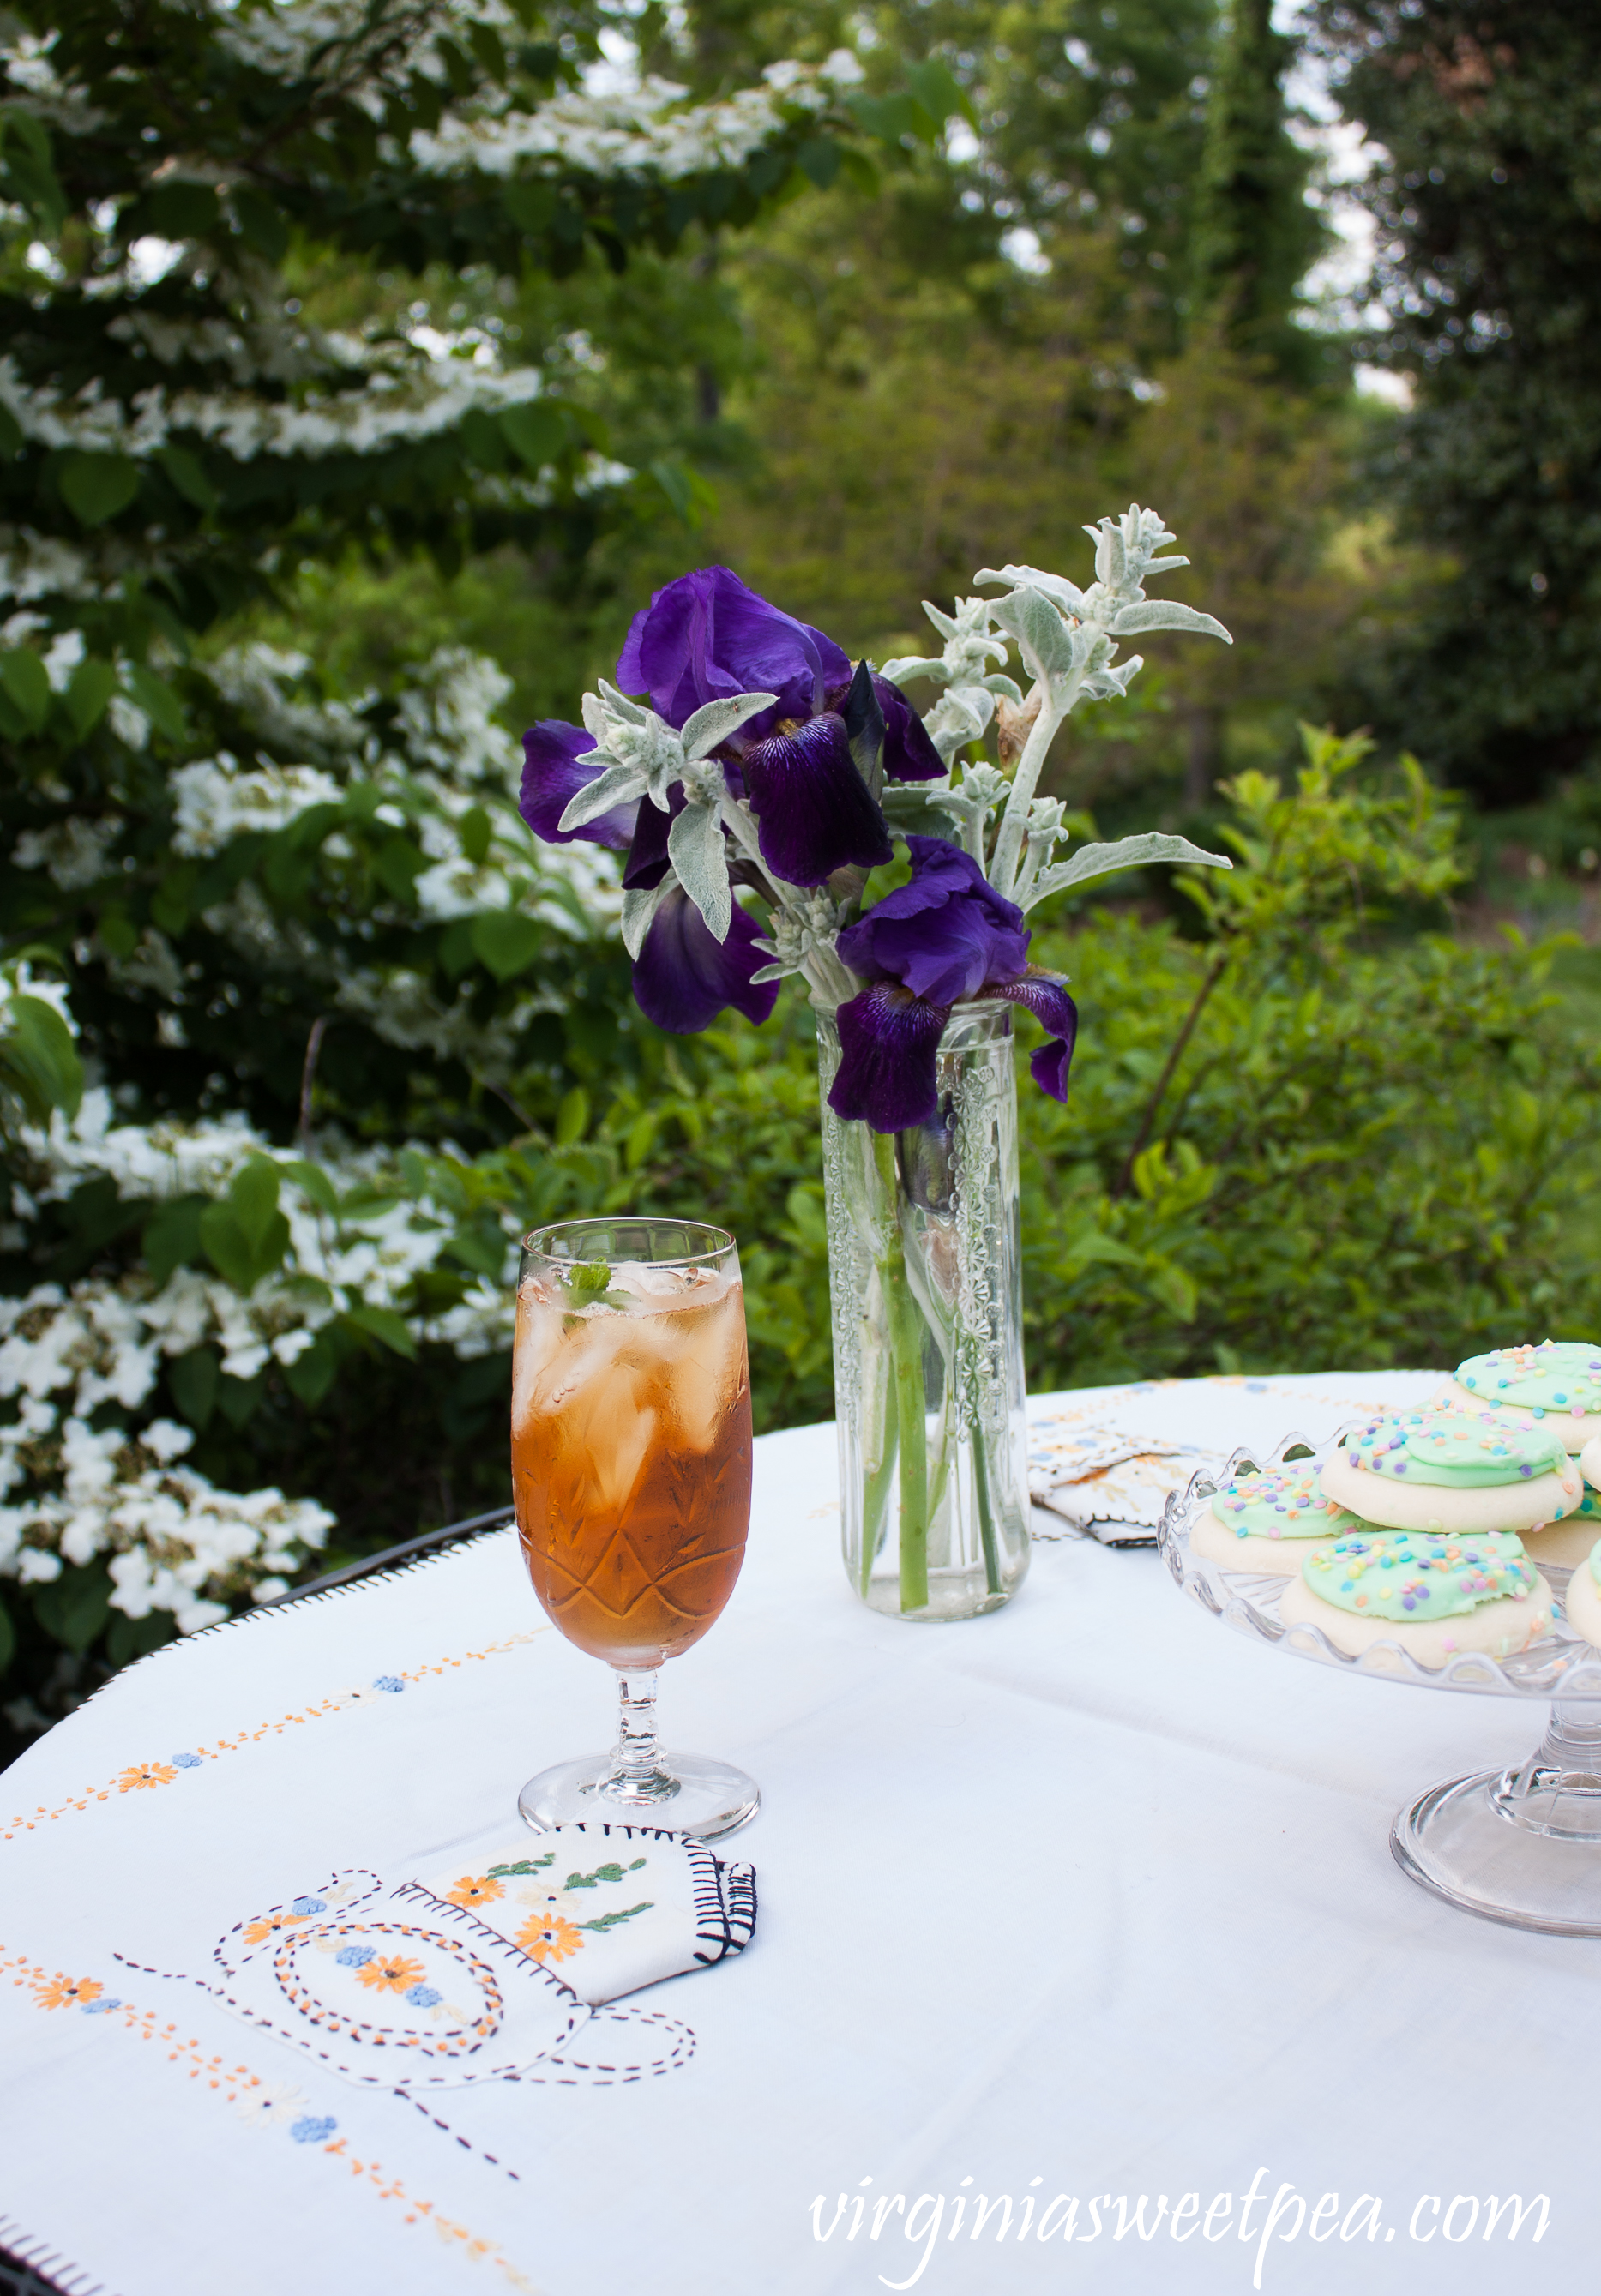 Spring Tea Party with Vintage - Iris and Lamb's Ear in a vintage vase.